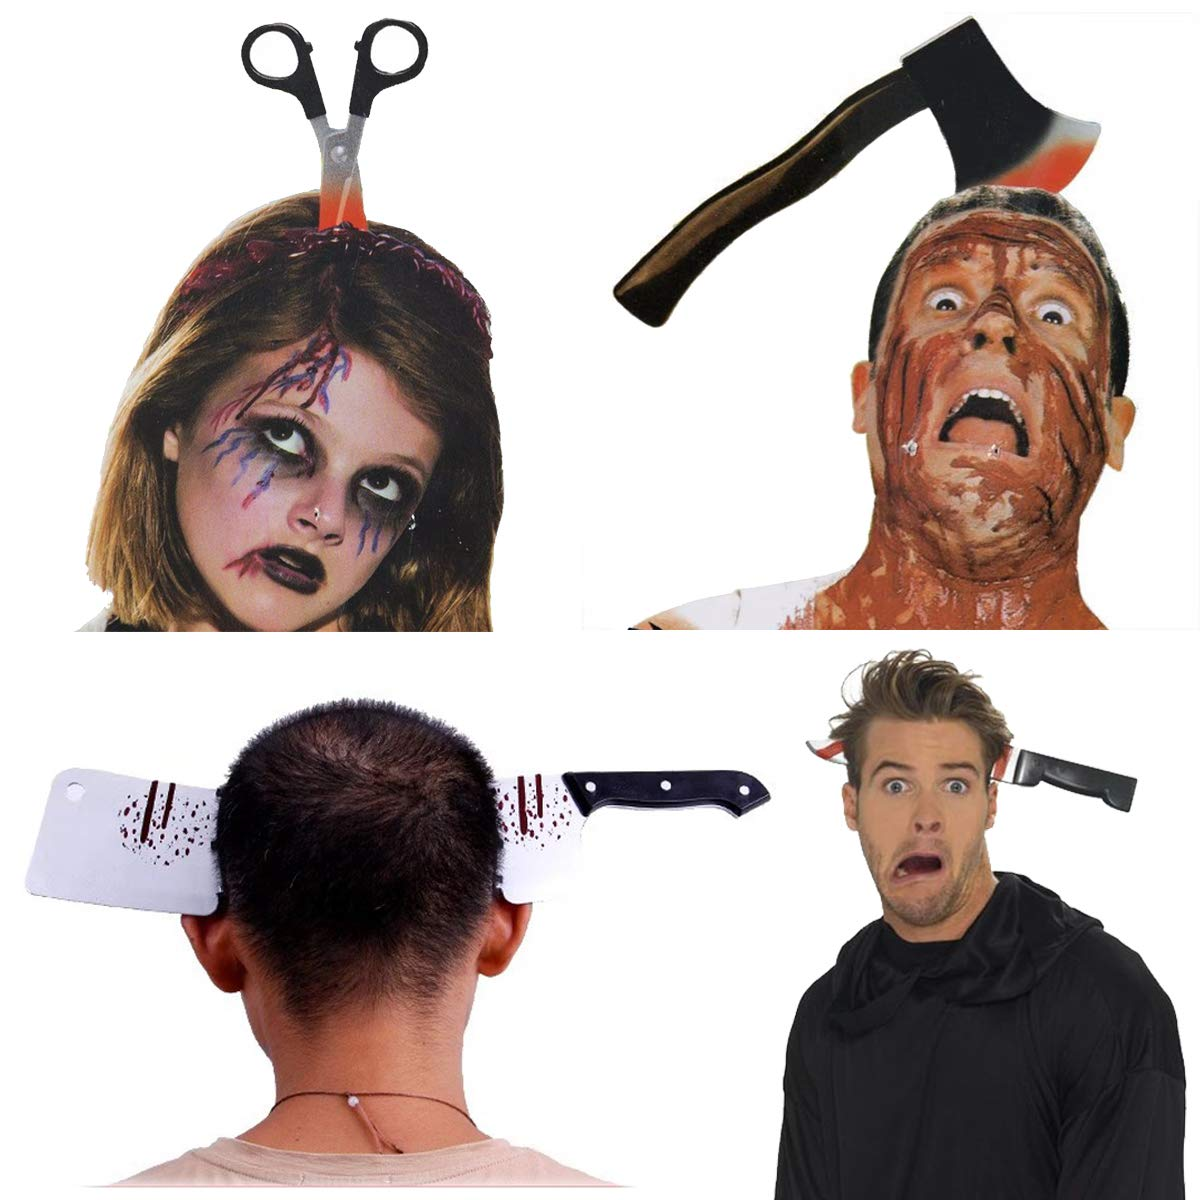 Halloween Costume Scary Weapon Headbands, 4 Packs Rubber Plastic Knife Axe Cleaver and Scissor Through Head, Zombie Accessories Makeup for Teen Girls Boys Men Women Adults Clearance Gifts by FashionABC